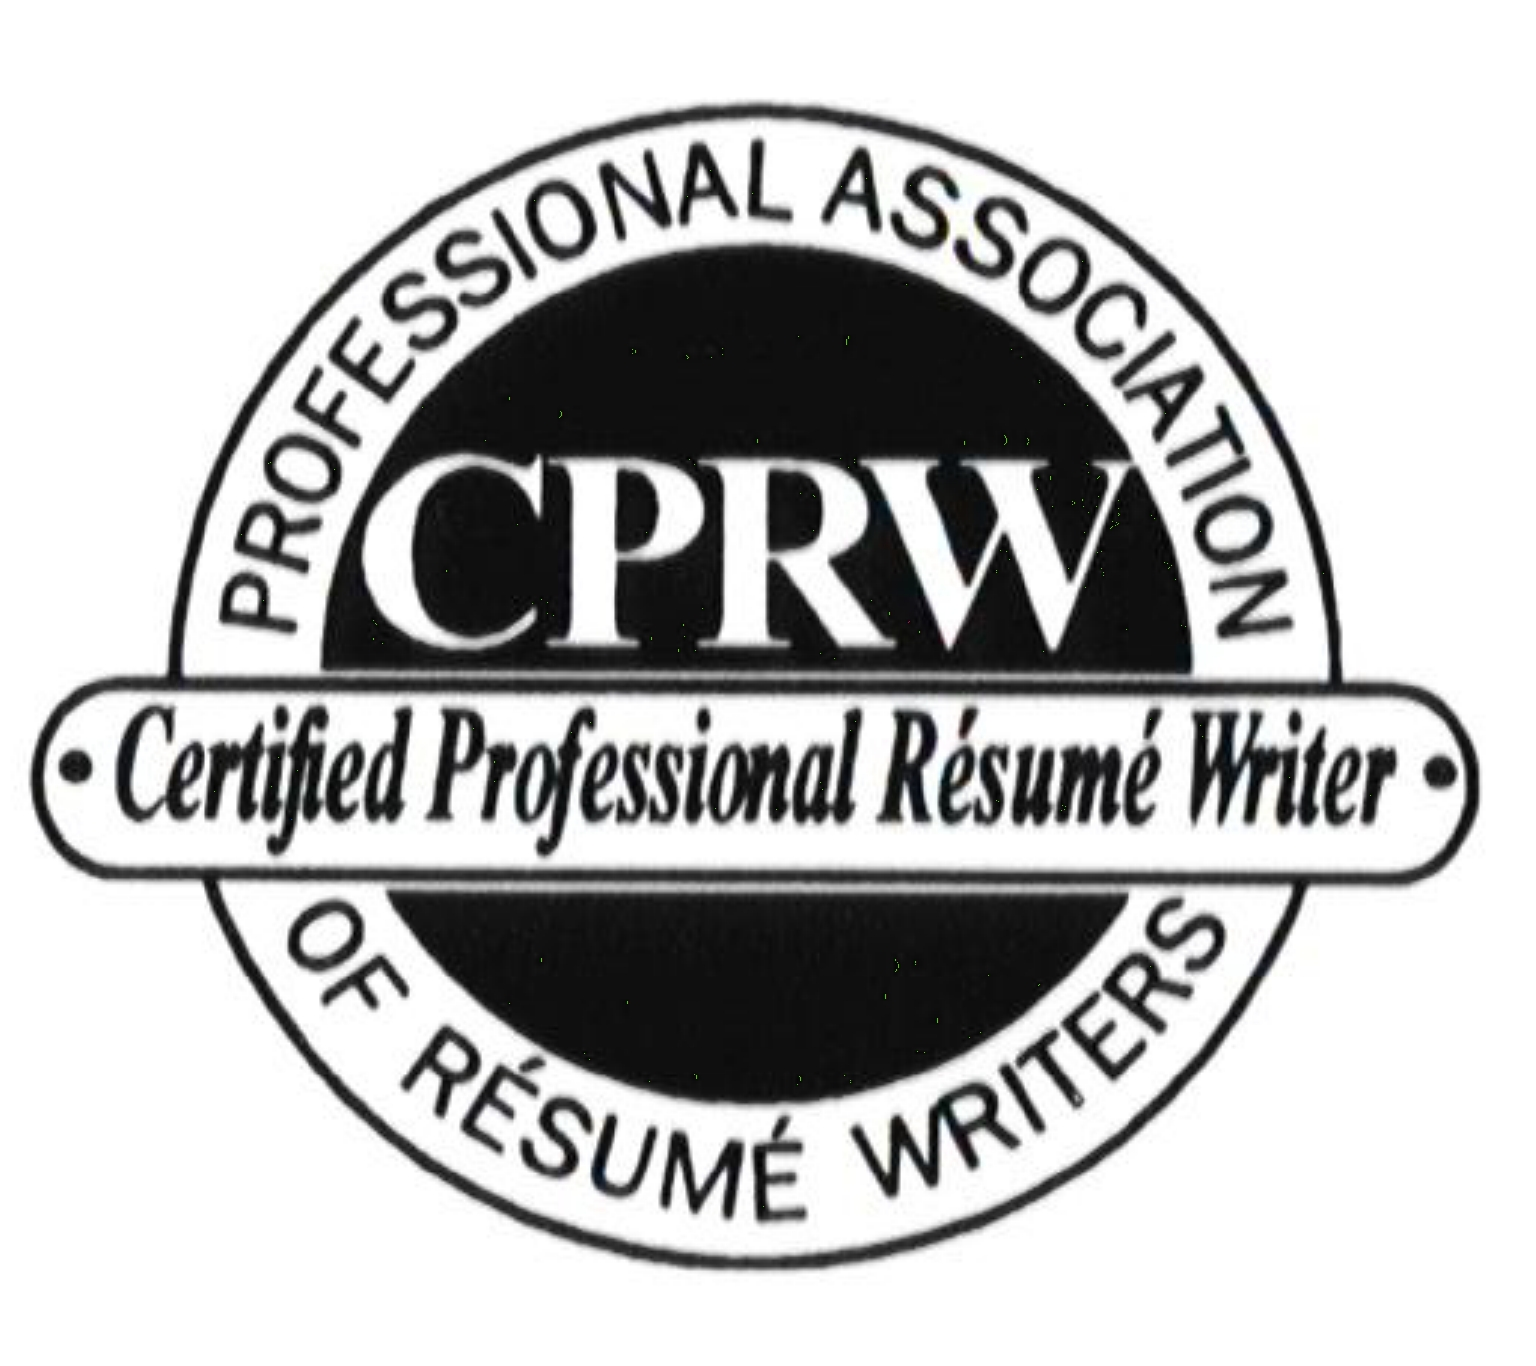 Cprw Certified Professional Resume Writer Feather Communications Blog